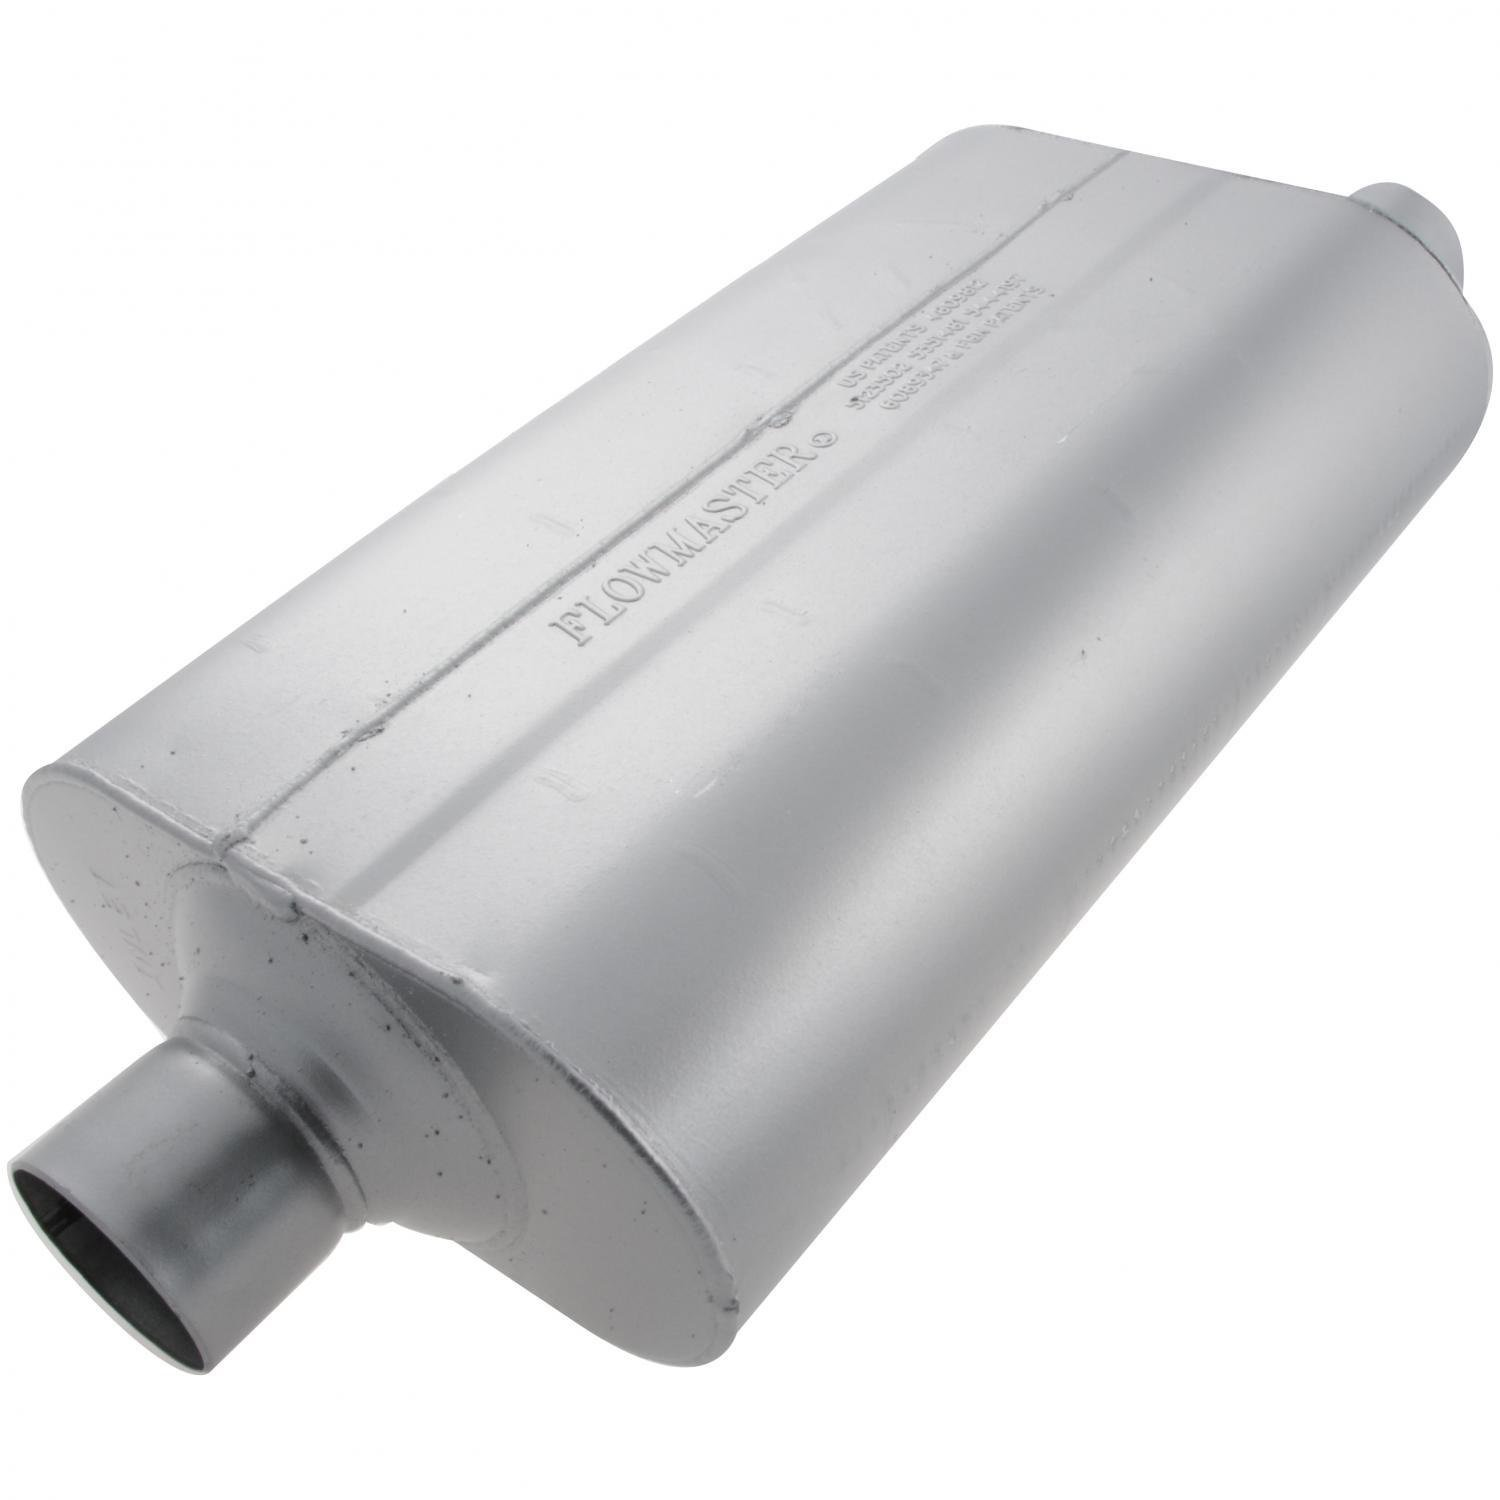 Flowmaster 52557 Super 50 Muffler - 2.50 Center IN / 2.50 Offset OUT - Moderate Sound by Flowmaster (Image #3)